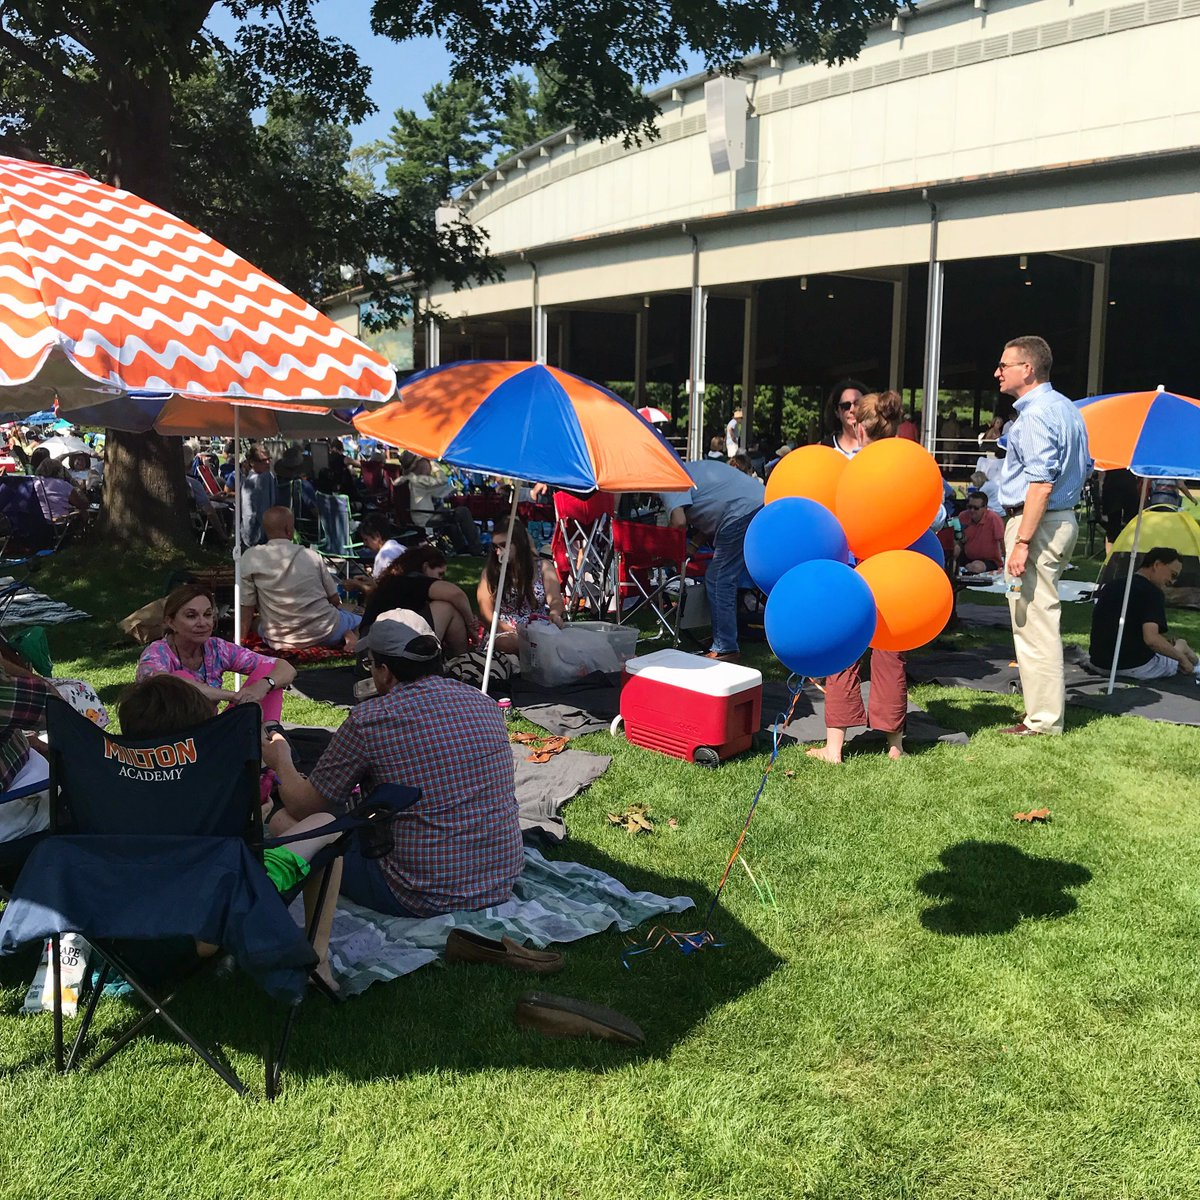 Thank you to all of the Milton alumni, parents and friends that joined us at Tanglewood yesterday!